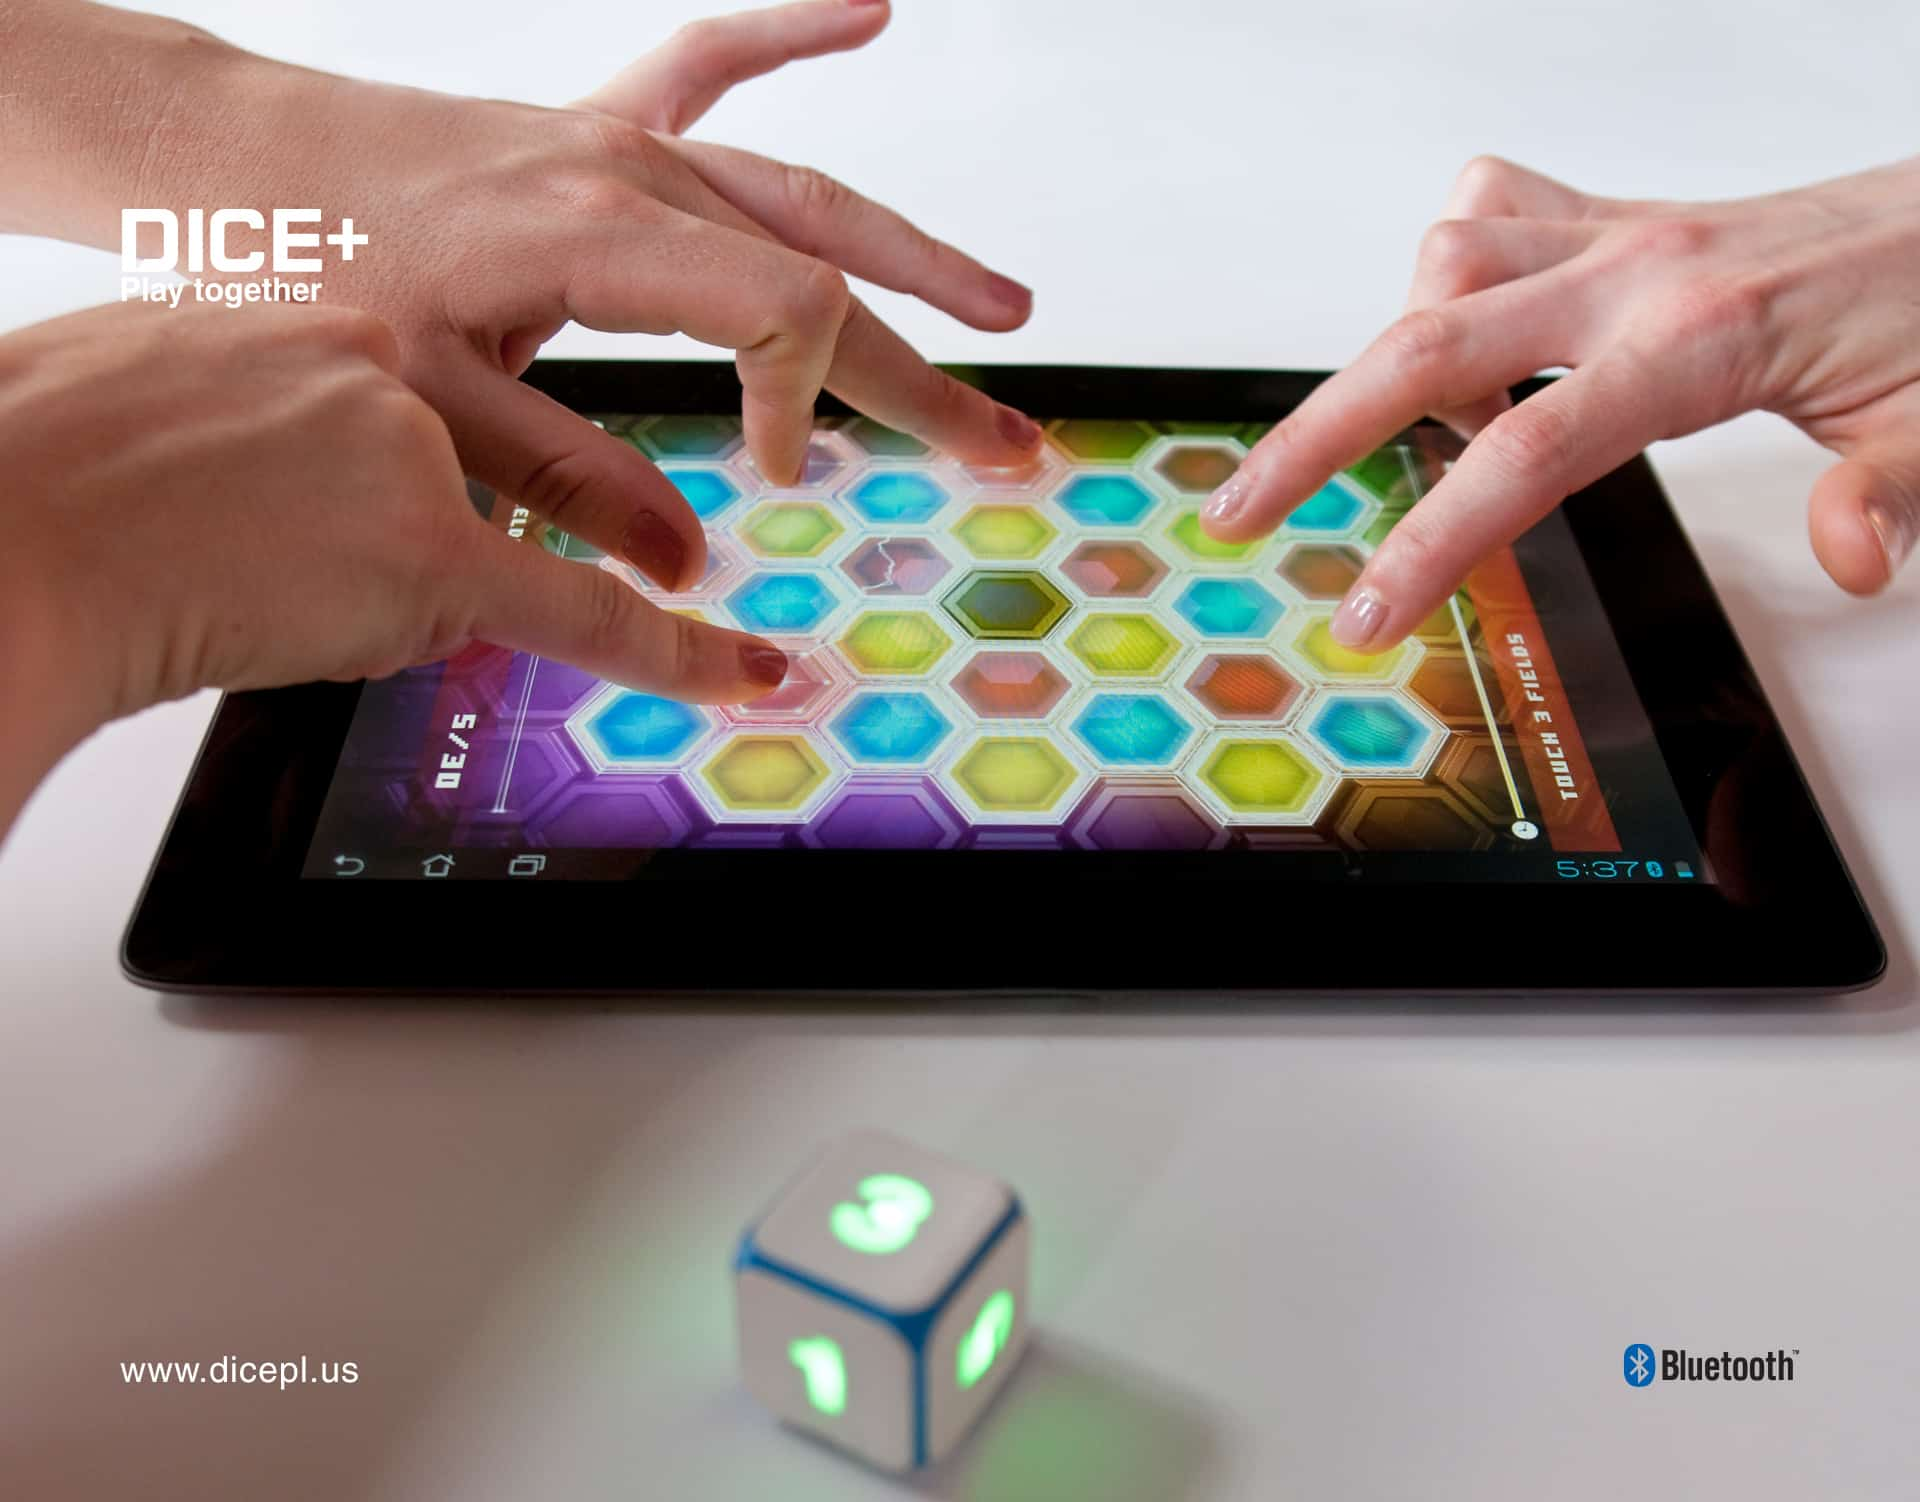 DICE+ Bluetooth Gaming Dice Tablet Game Accessory